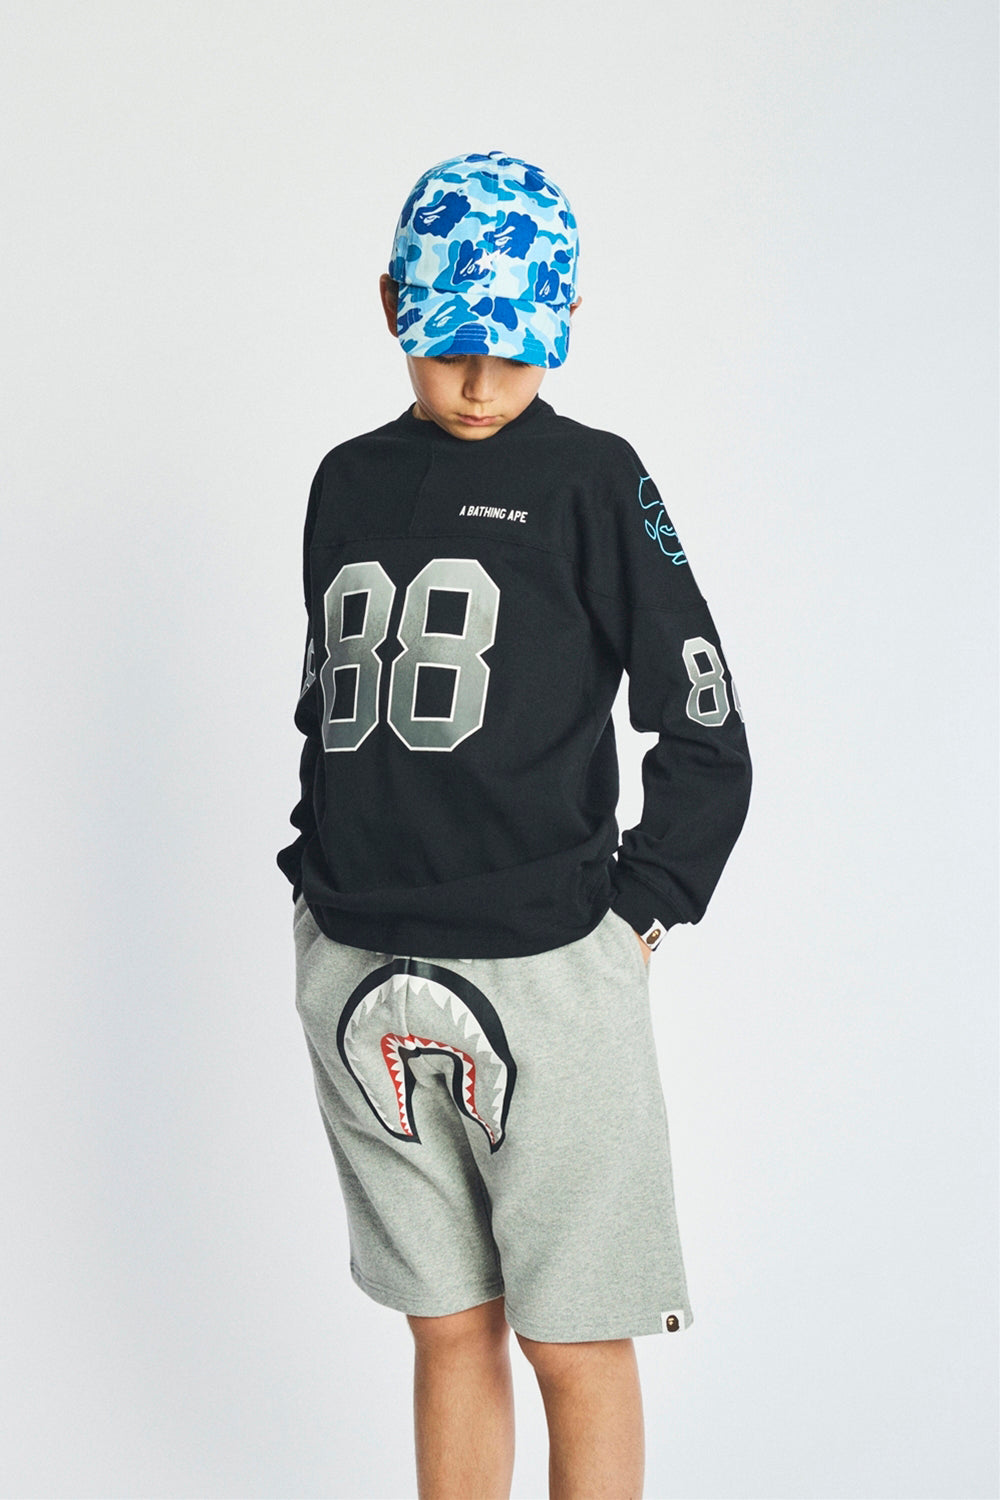 A BATHING APE 2019 AW KIDS' LOOKBOOK 23